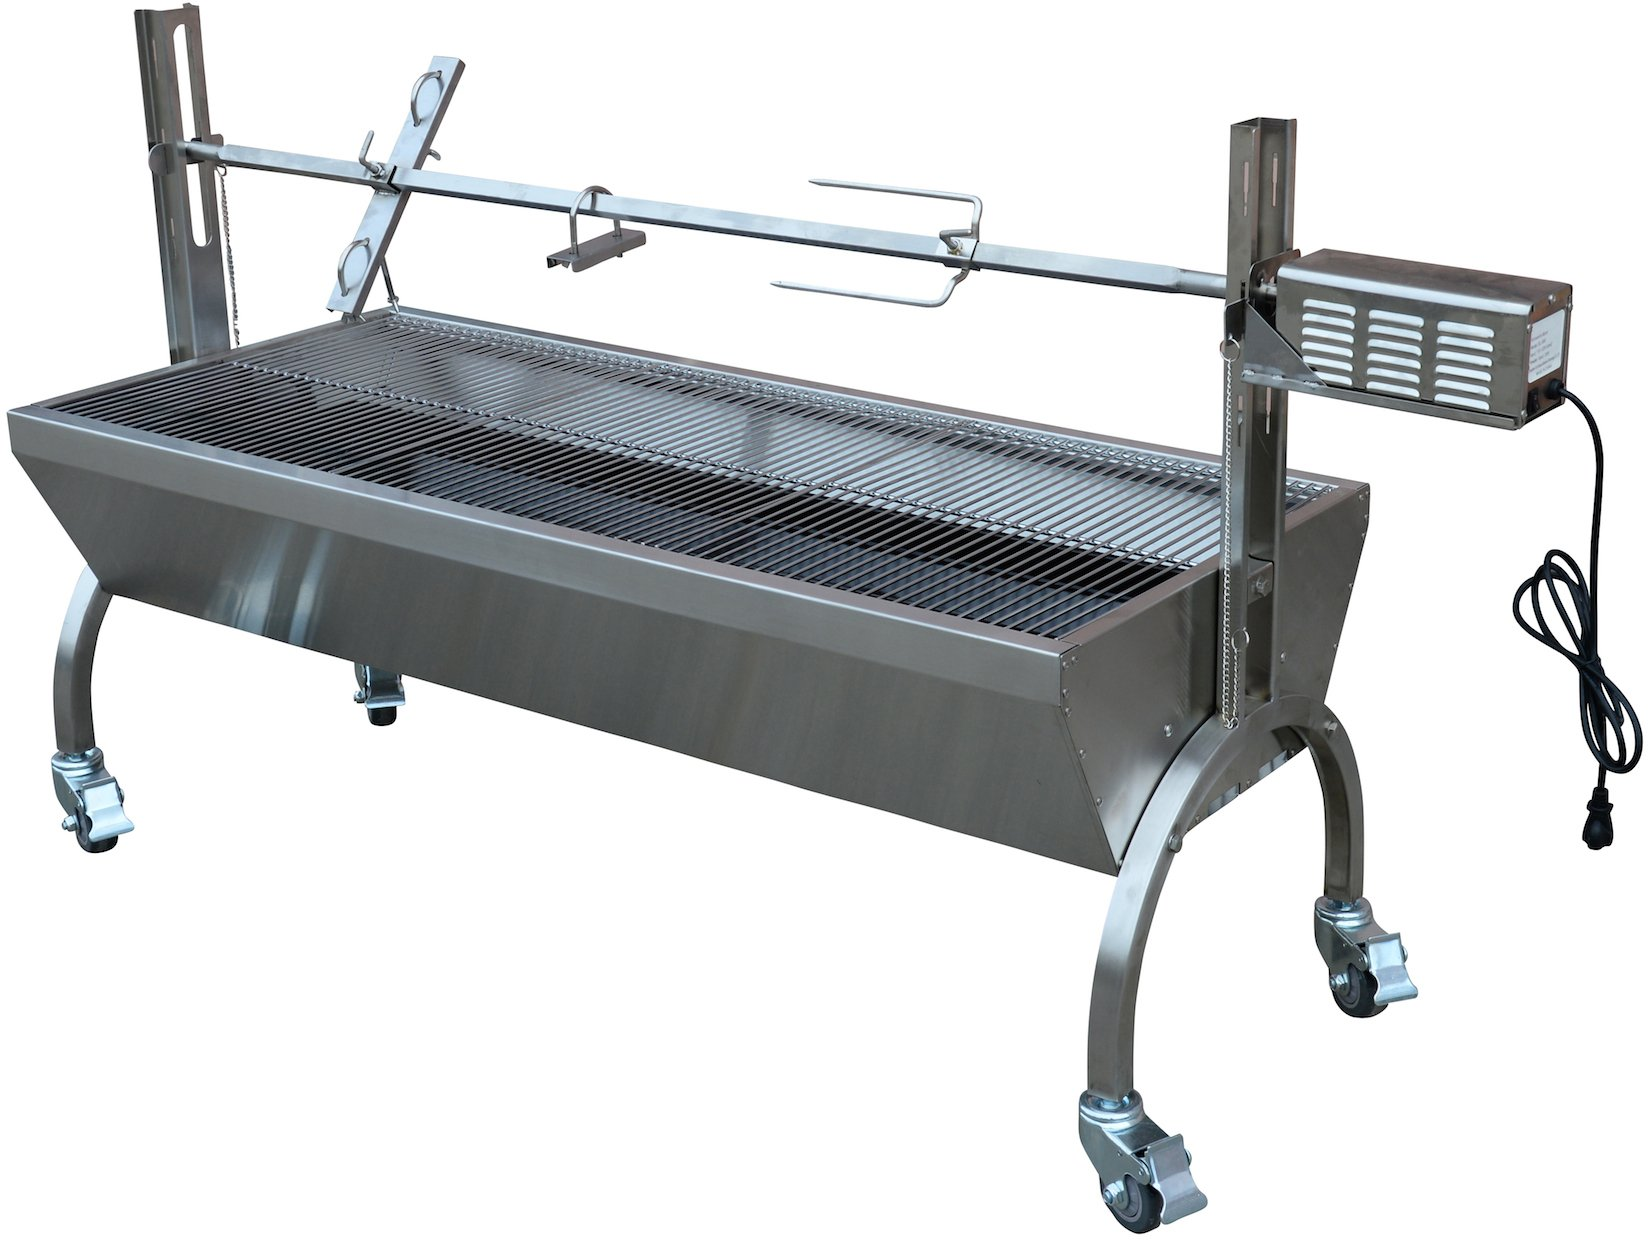 Titan Great Outdoors 13W Stainless Steel Rotisserie Grill by Titan Attachments